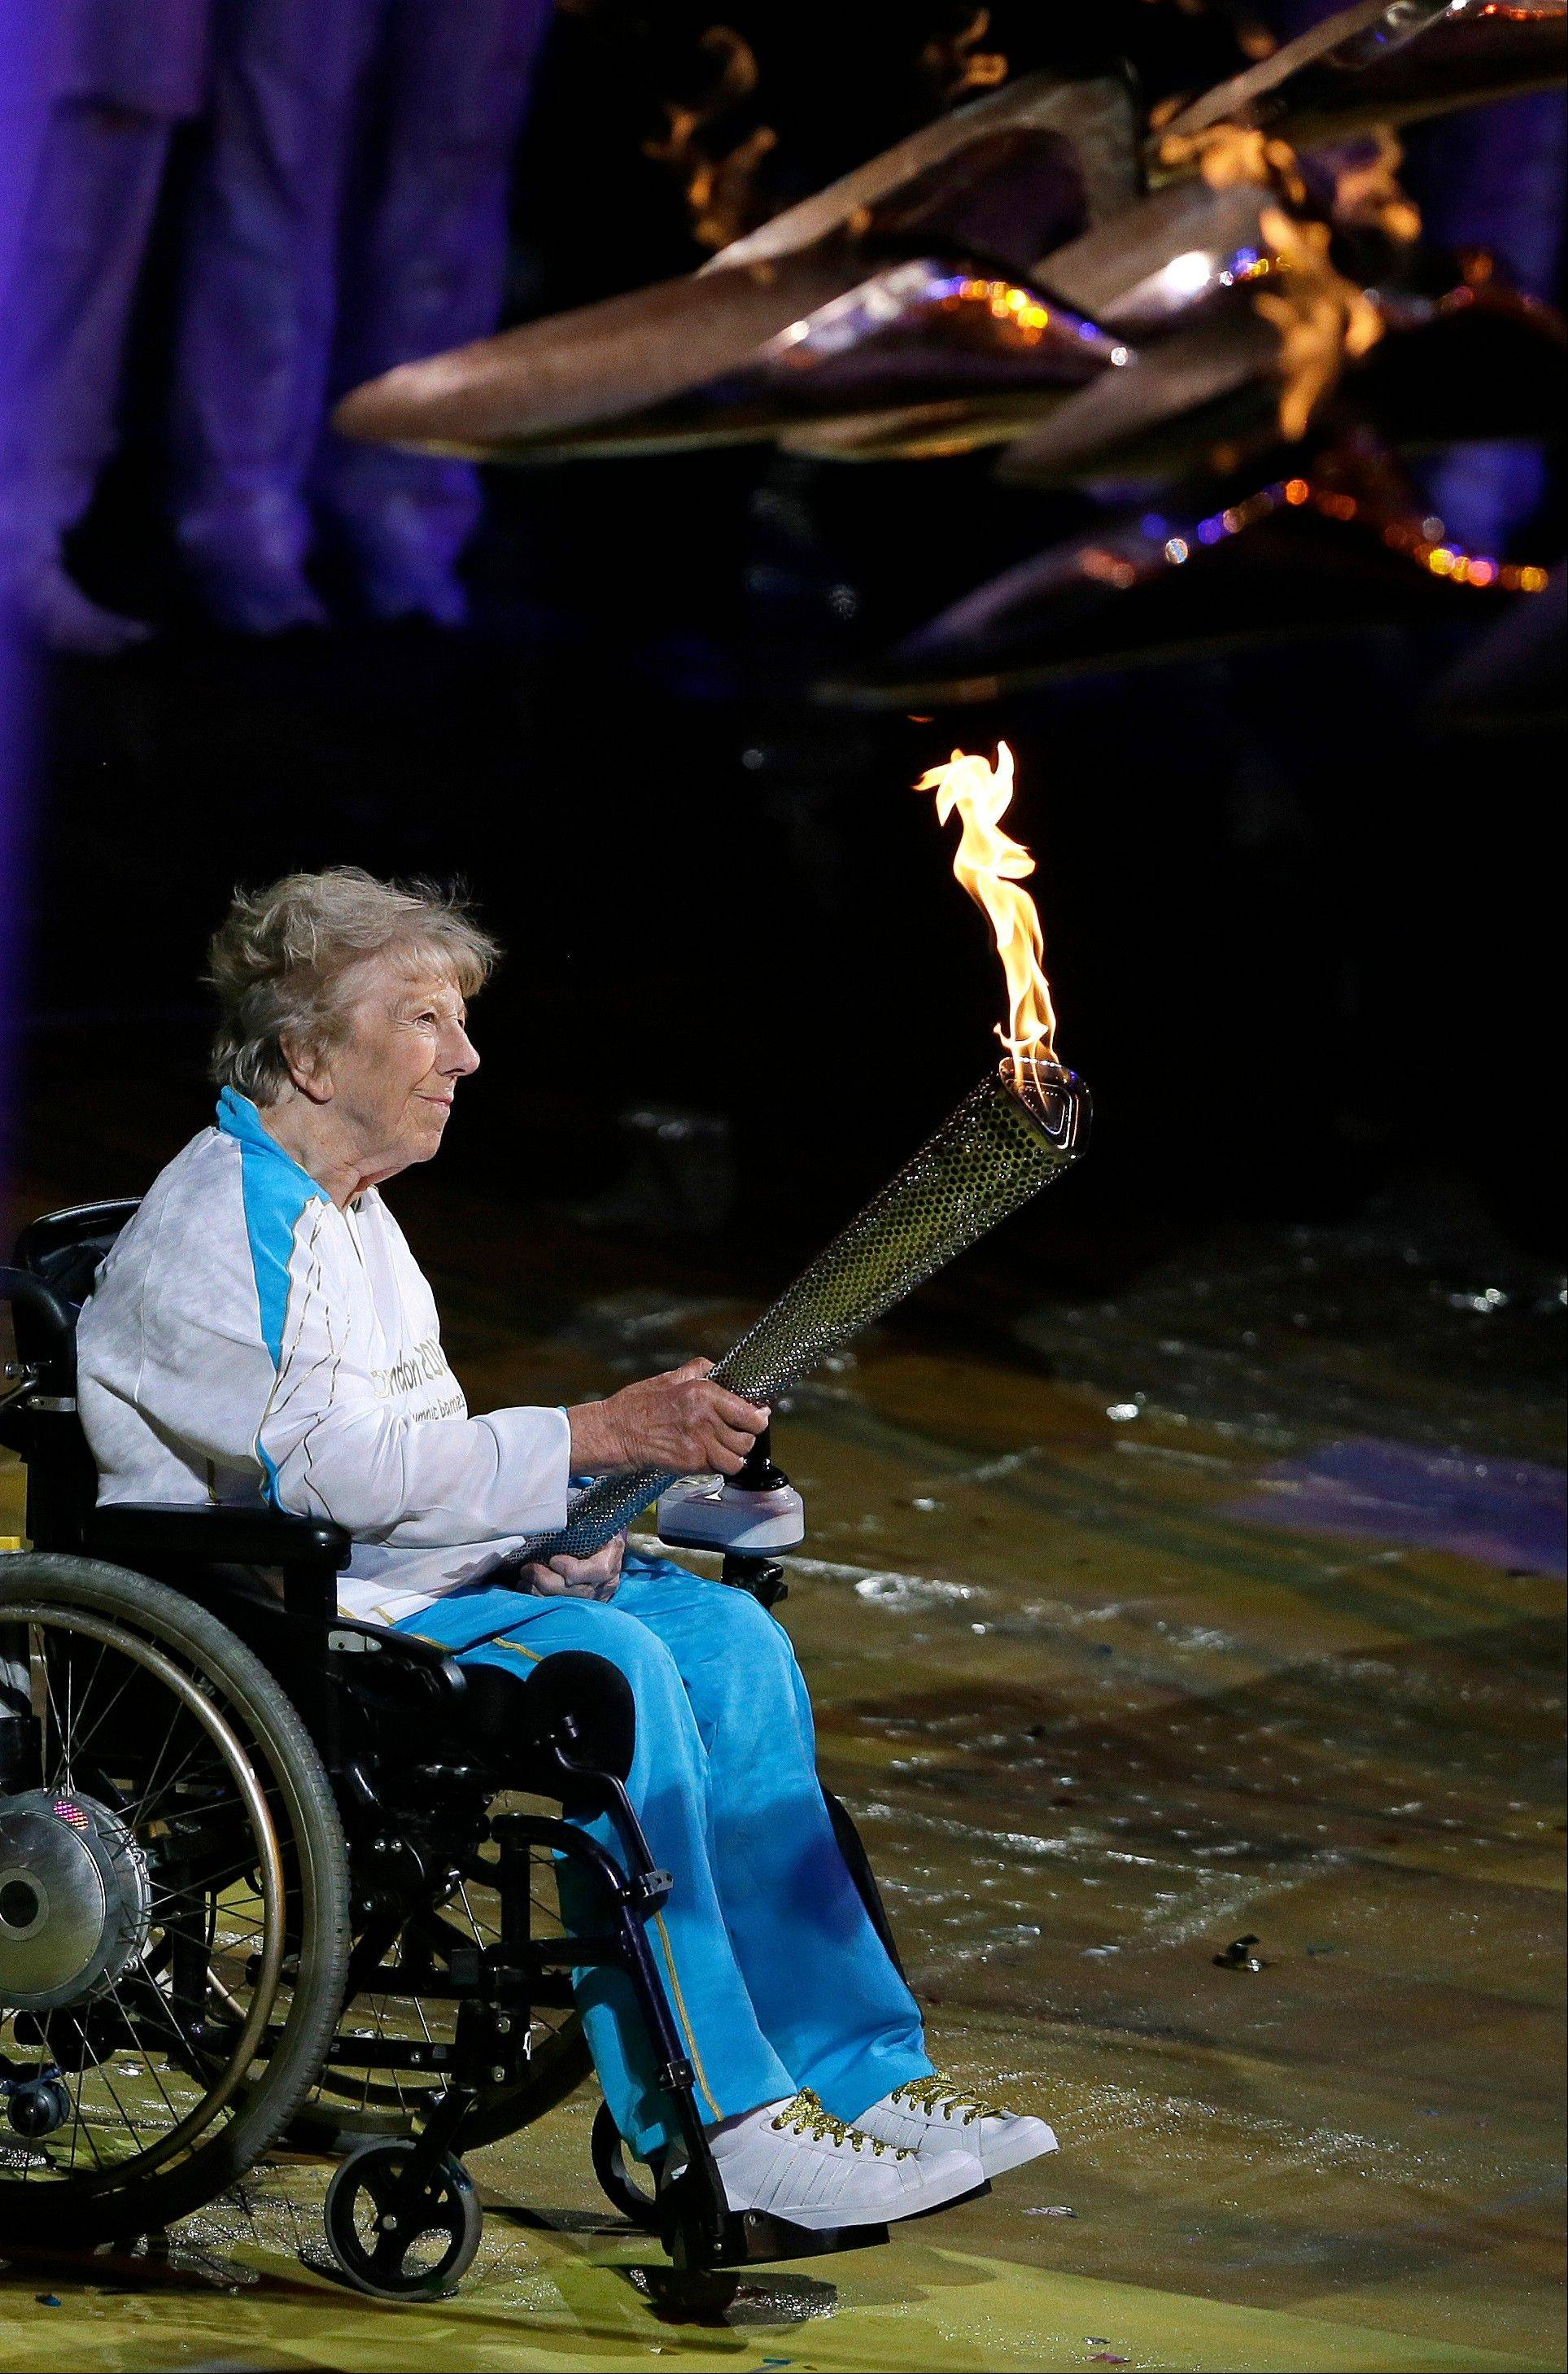 Margaret Maughan, Britain's first Paralympic gold medalist, lights the Paralympic flame during the Opening Ceremony for the 2012 Paralympics in London, Wednesday Aug. 29, 2012.